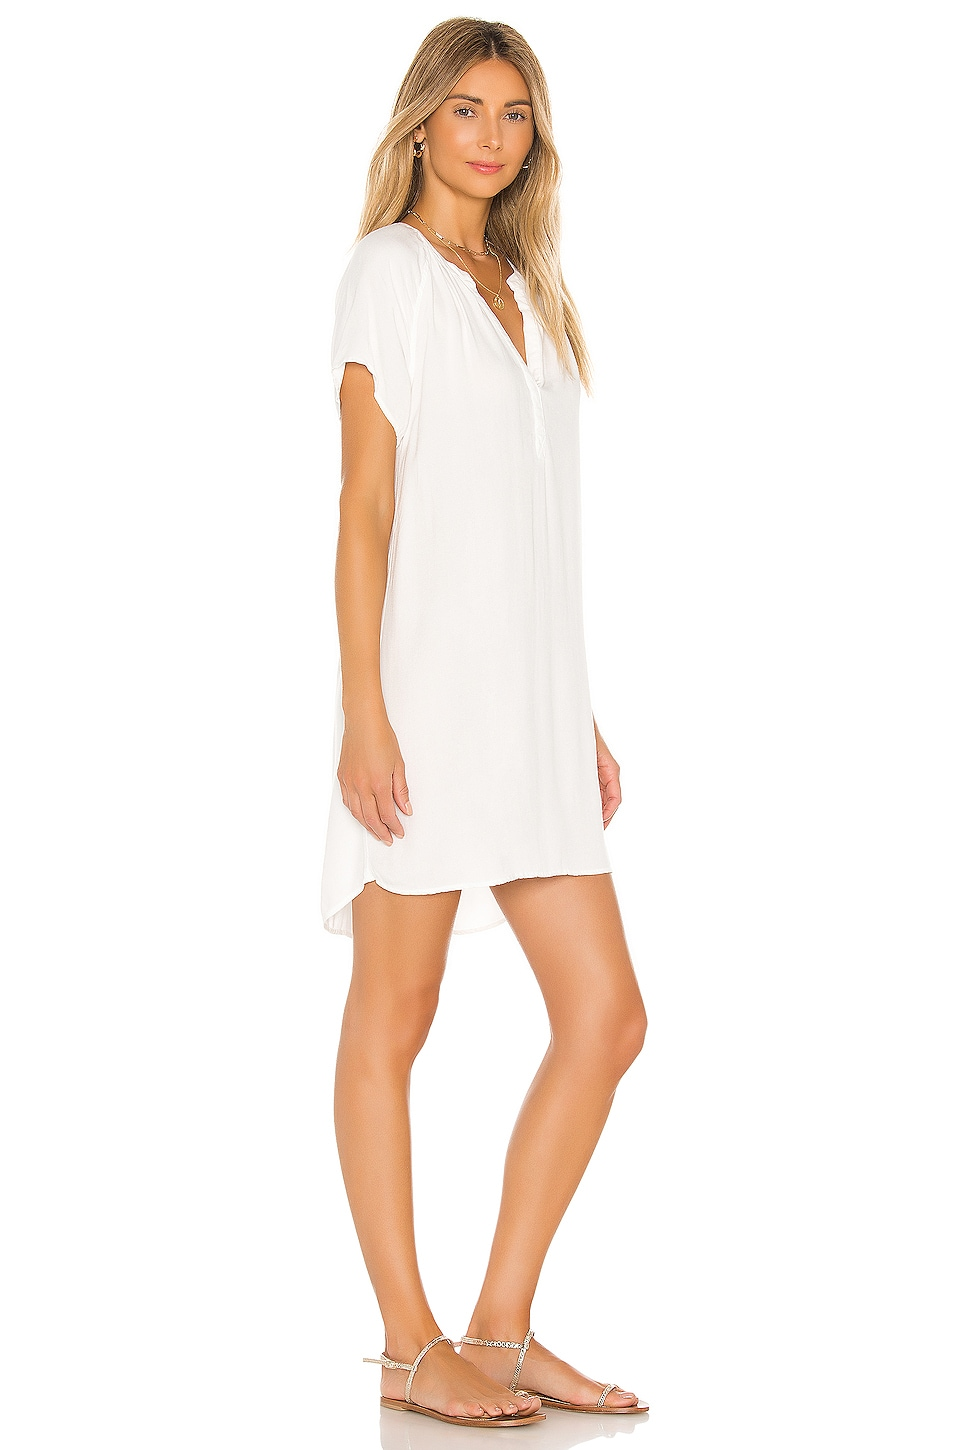 Beach Crepe Mini Dress, view 2, click to view large image.